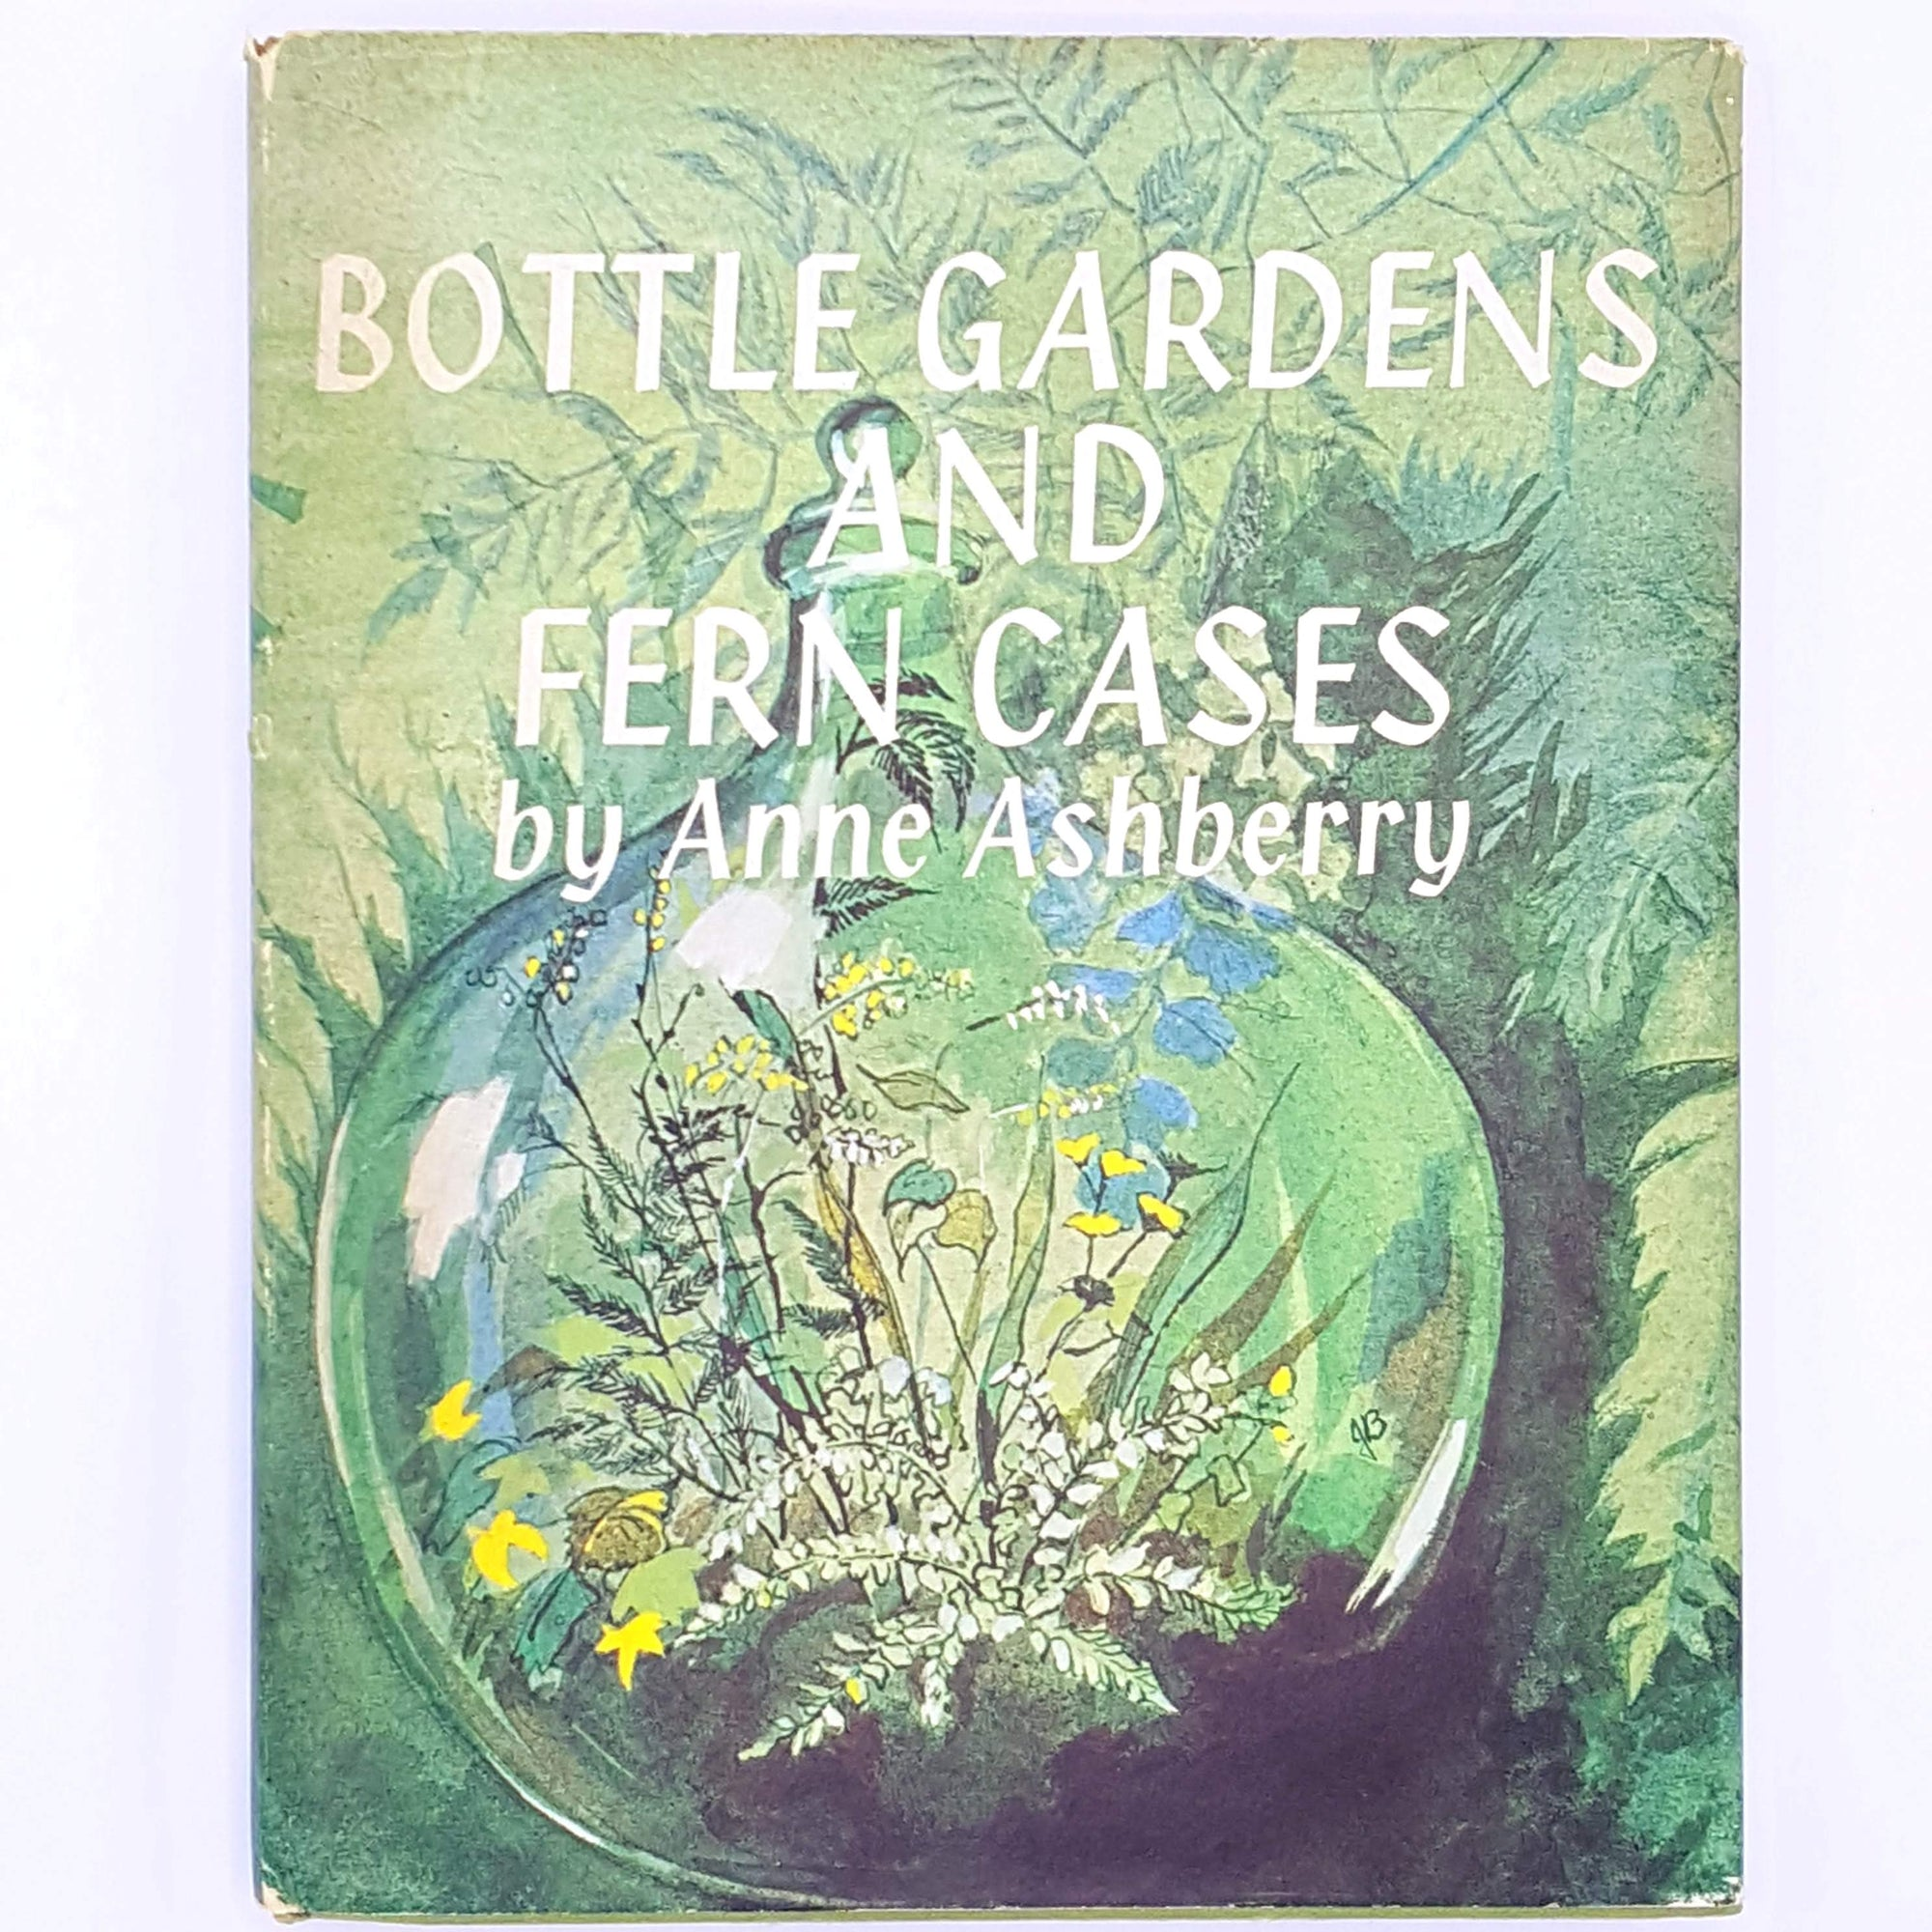 Bottle Gardens and Fern Cases. The Garden Book Club, Anne Ashberry, 1965